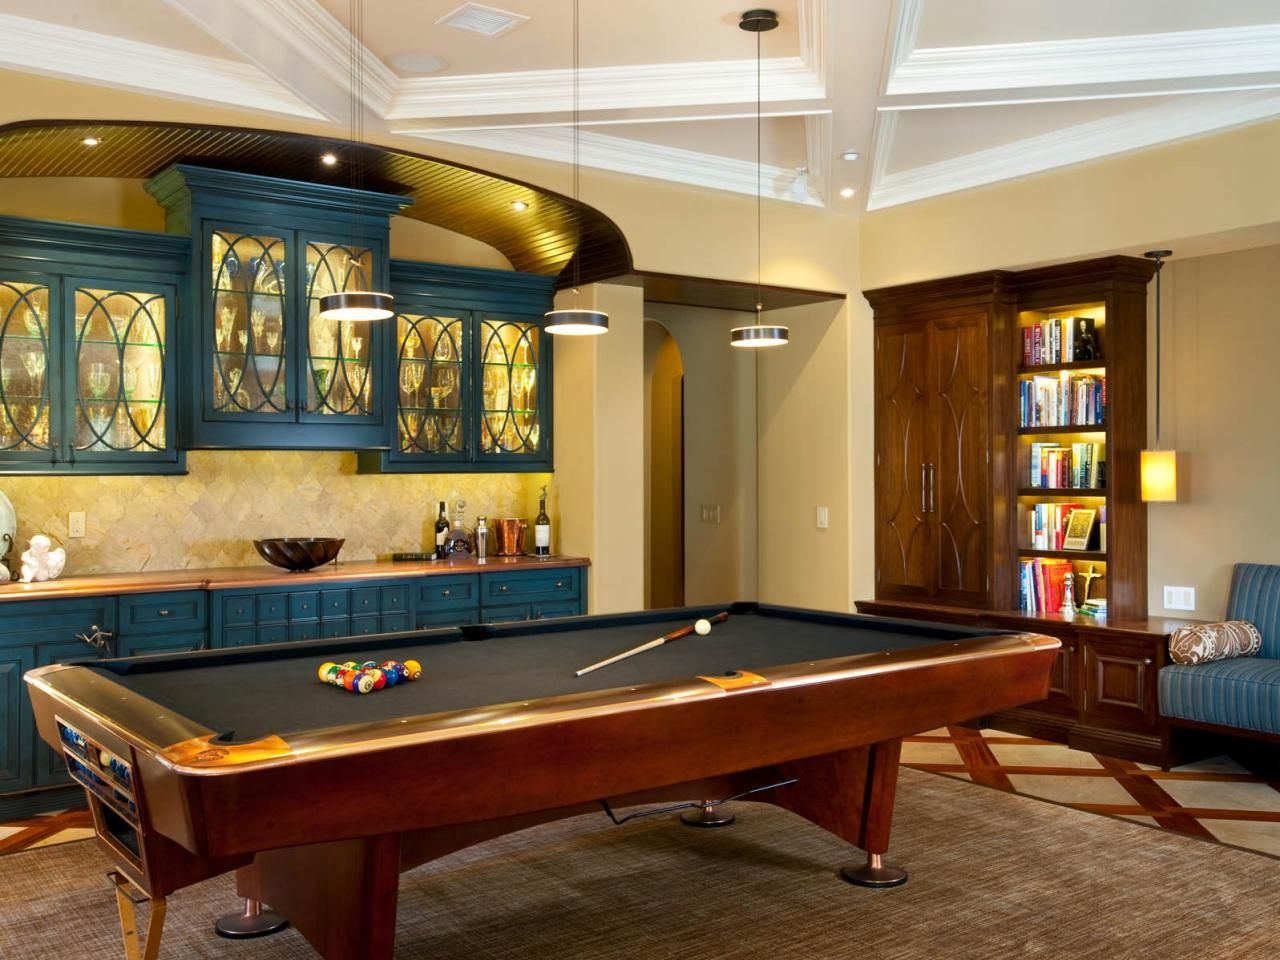 Bedroom Design Games Game Room Design  Game Room Ideas Gallery  Game Room Design